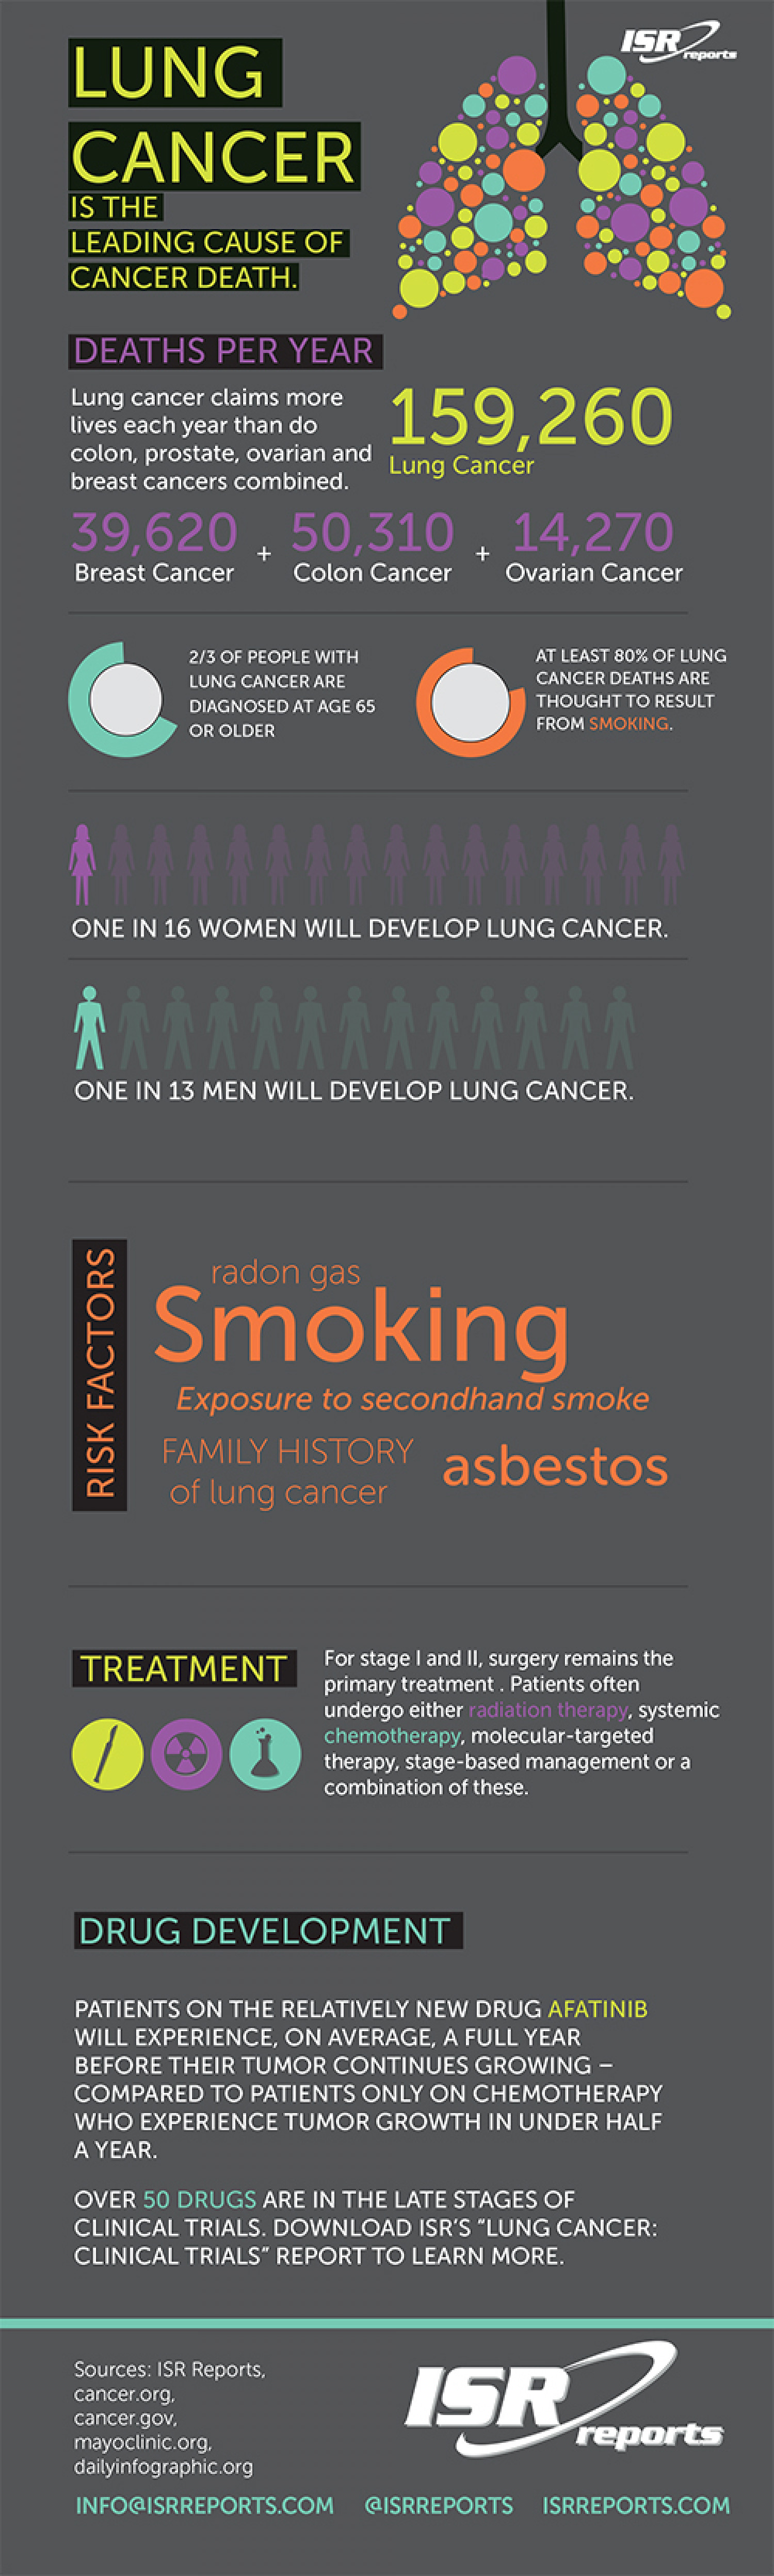 Lung Cancer: The Leading Cause of Cancer Death Infographic